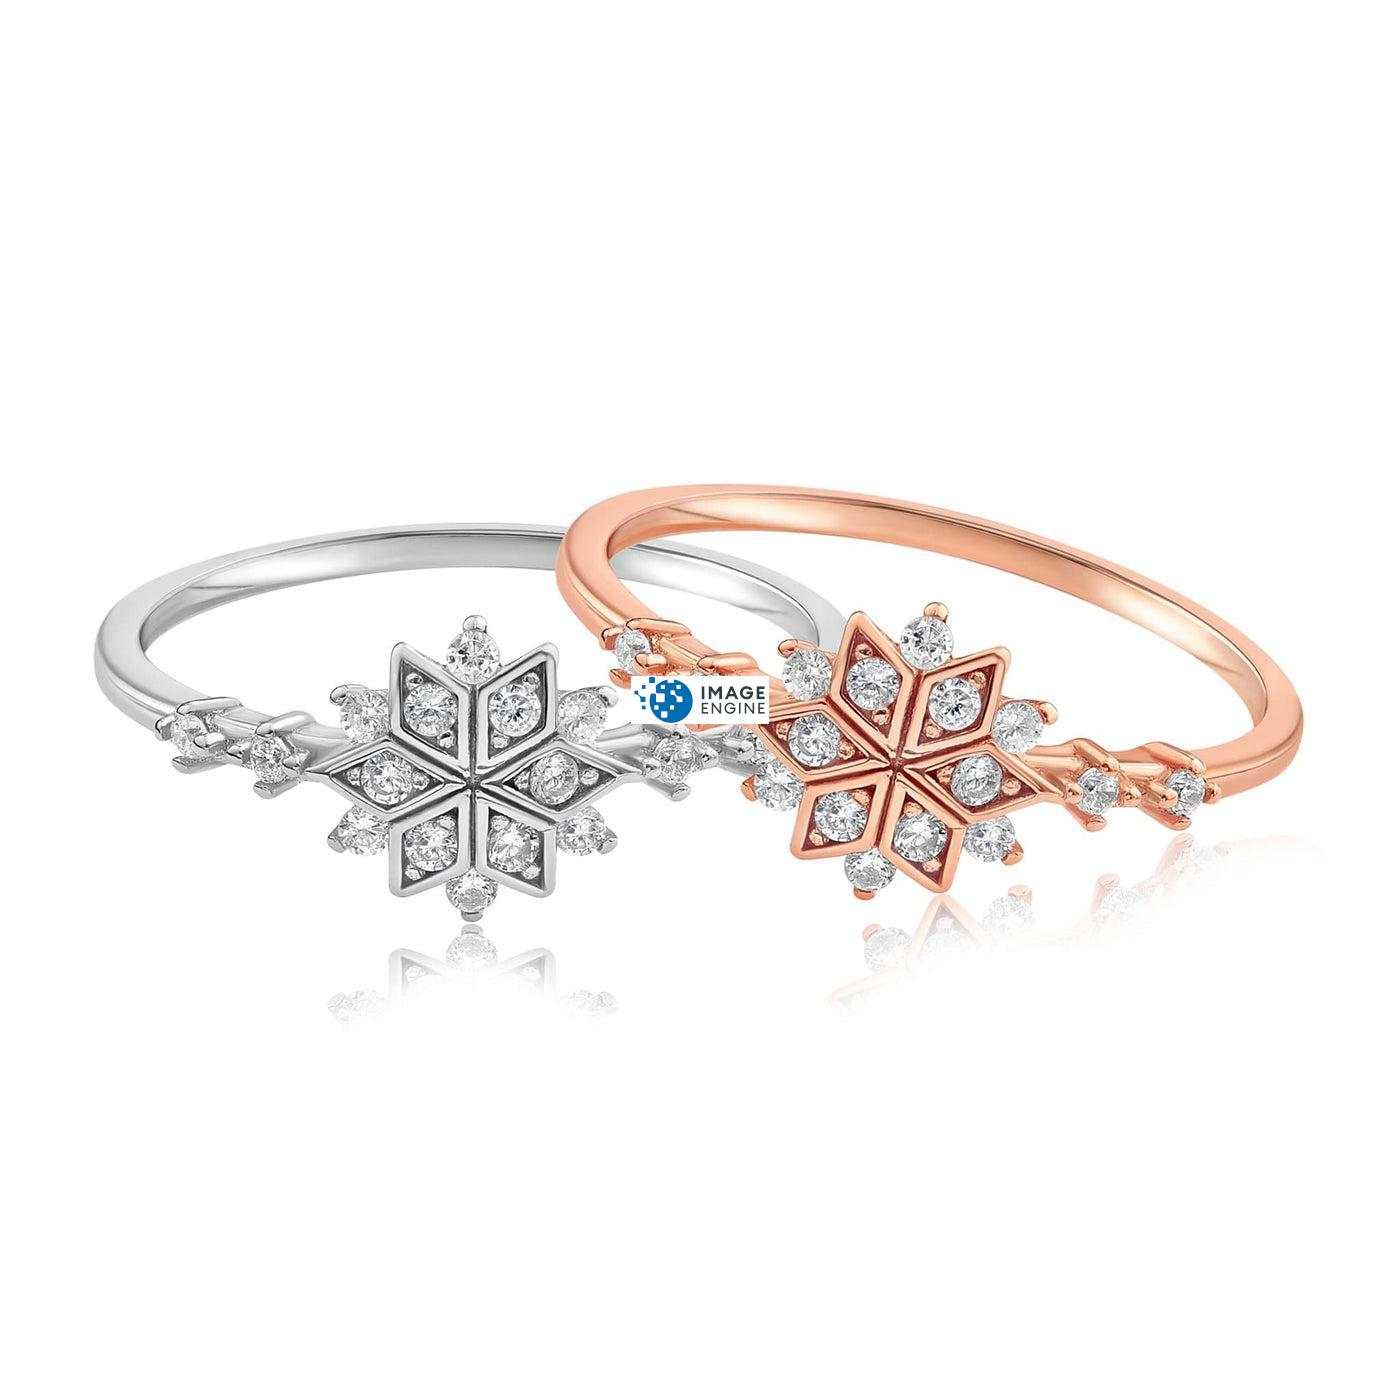 Sophia Snowflake Ring - Front View Side by Side - 18K Rose Gold Vermeil and 925 Sterling Silver